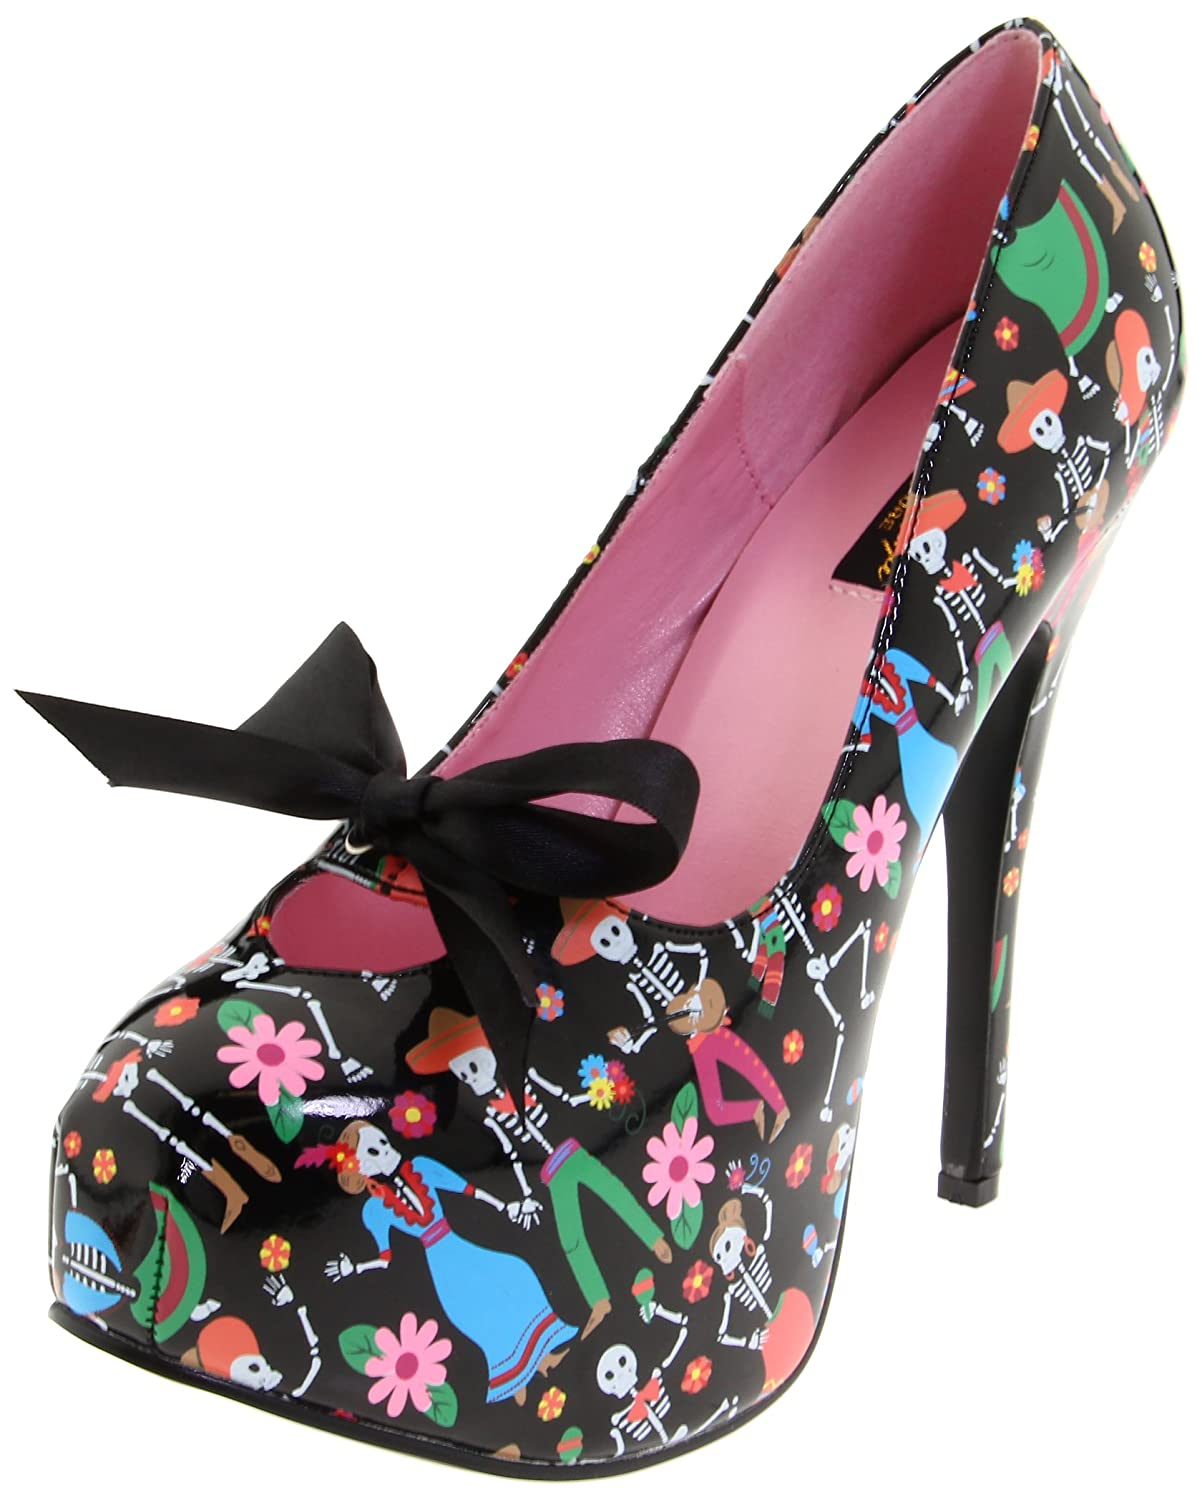 Pin Up Couture Bettie Red Satin Polka Dot Ankle Strap Peep Toe Heels B004NNH0VC 23.0~23.5 cm|RSA RSA 23.0~23.5 cm